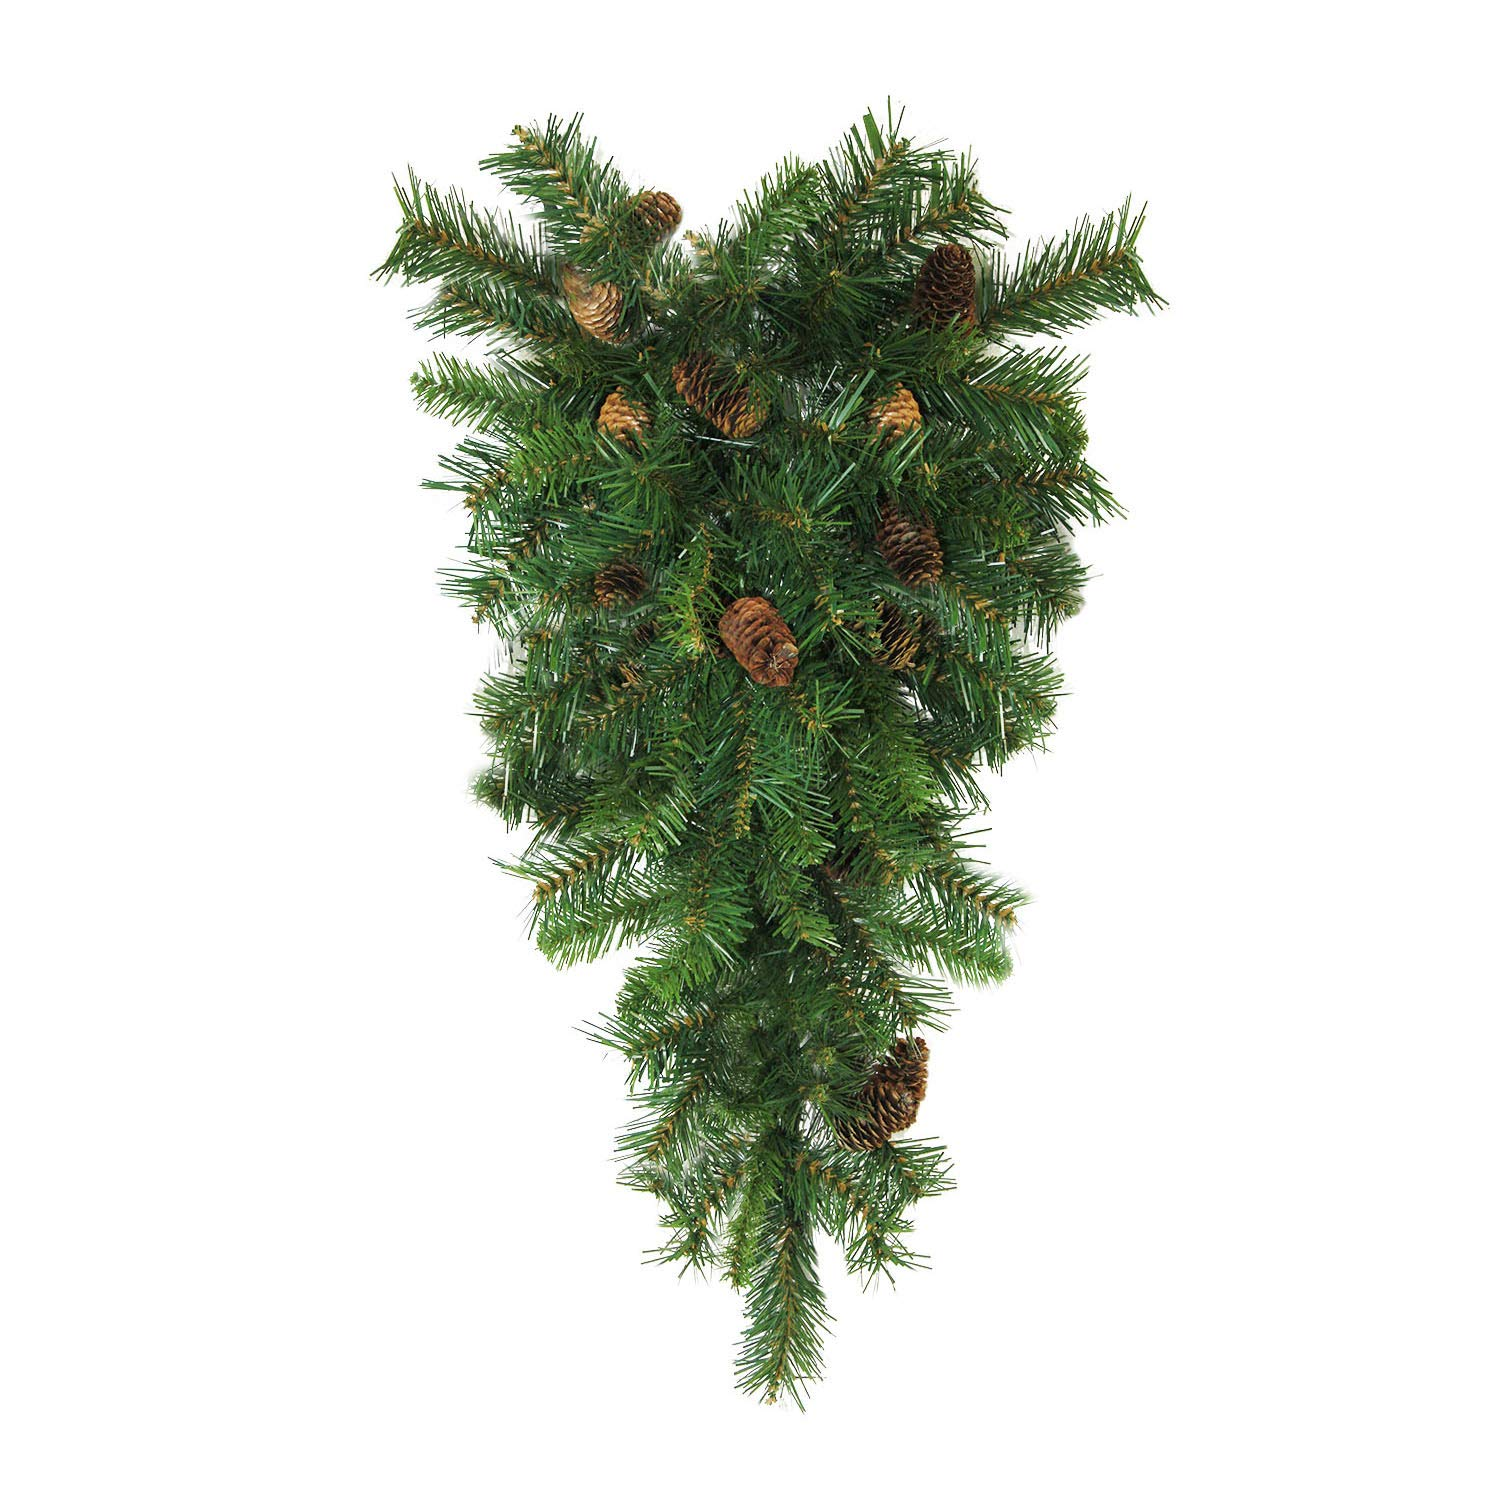 Northlight 42'' Dakota Red Pine Artificial Christmas Teardrop Swag with Pine Cones - Unlit by Northlight